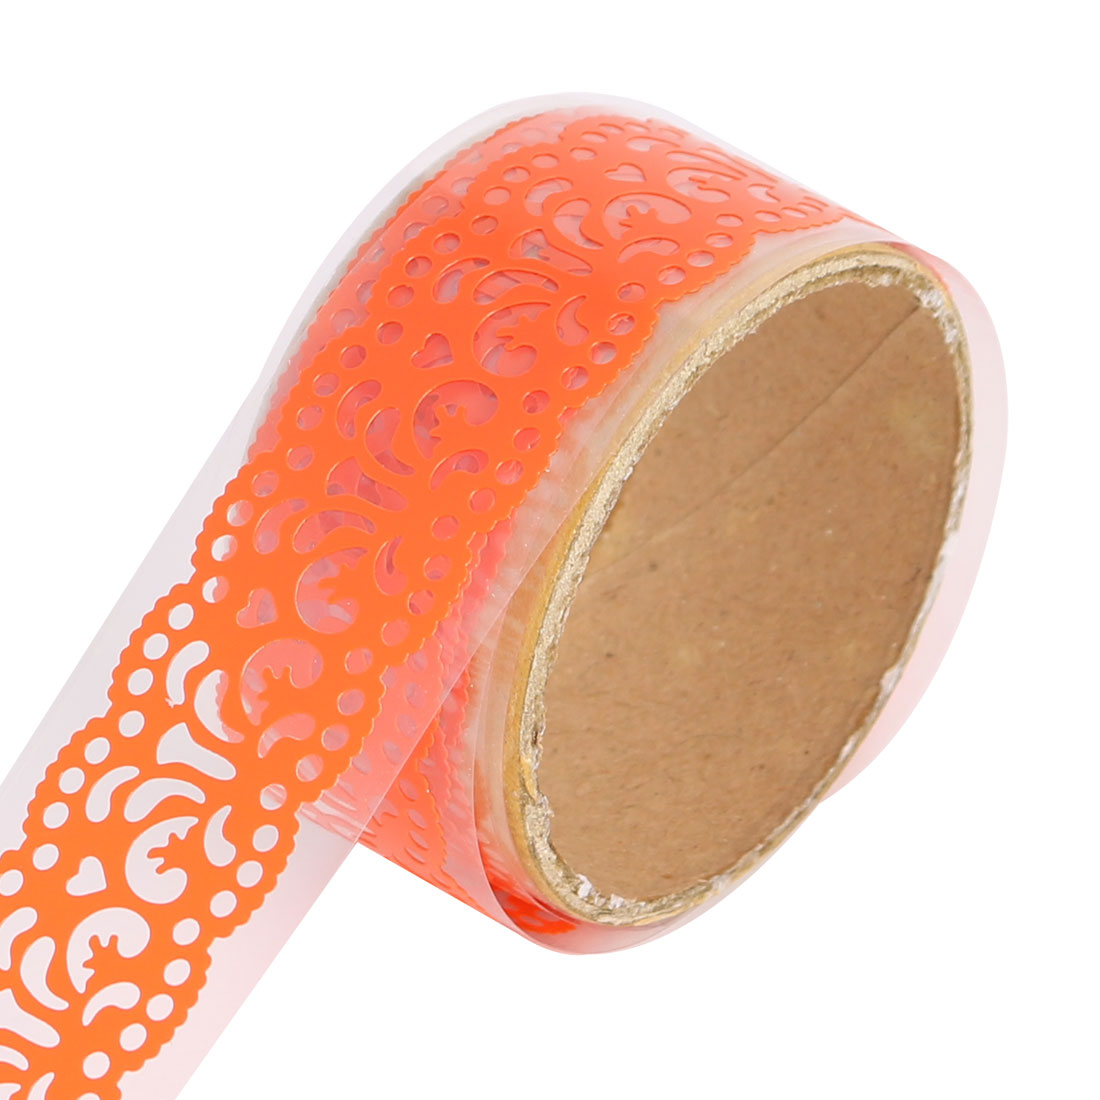 Floral Lace Pattern Self Adhesive DIY Scrapbooking Decorative Sticky Tape Orange